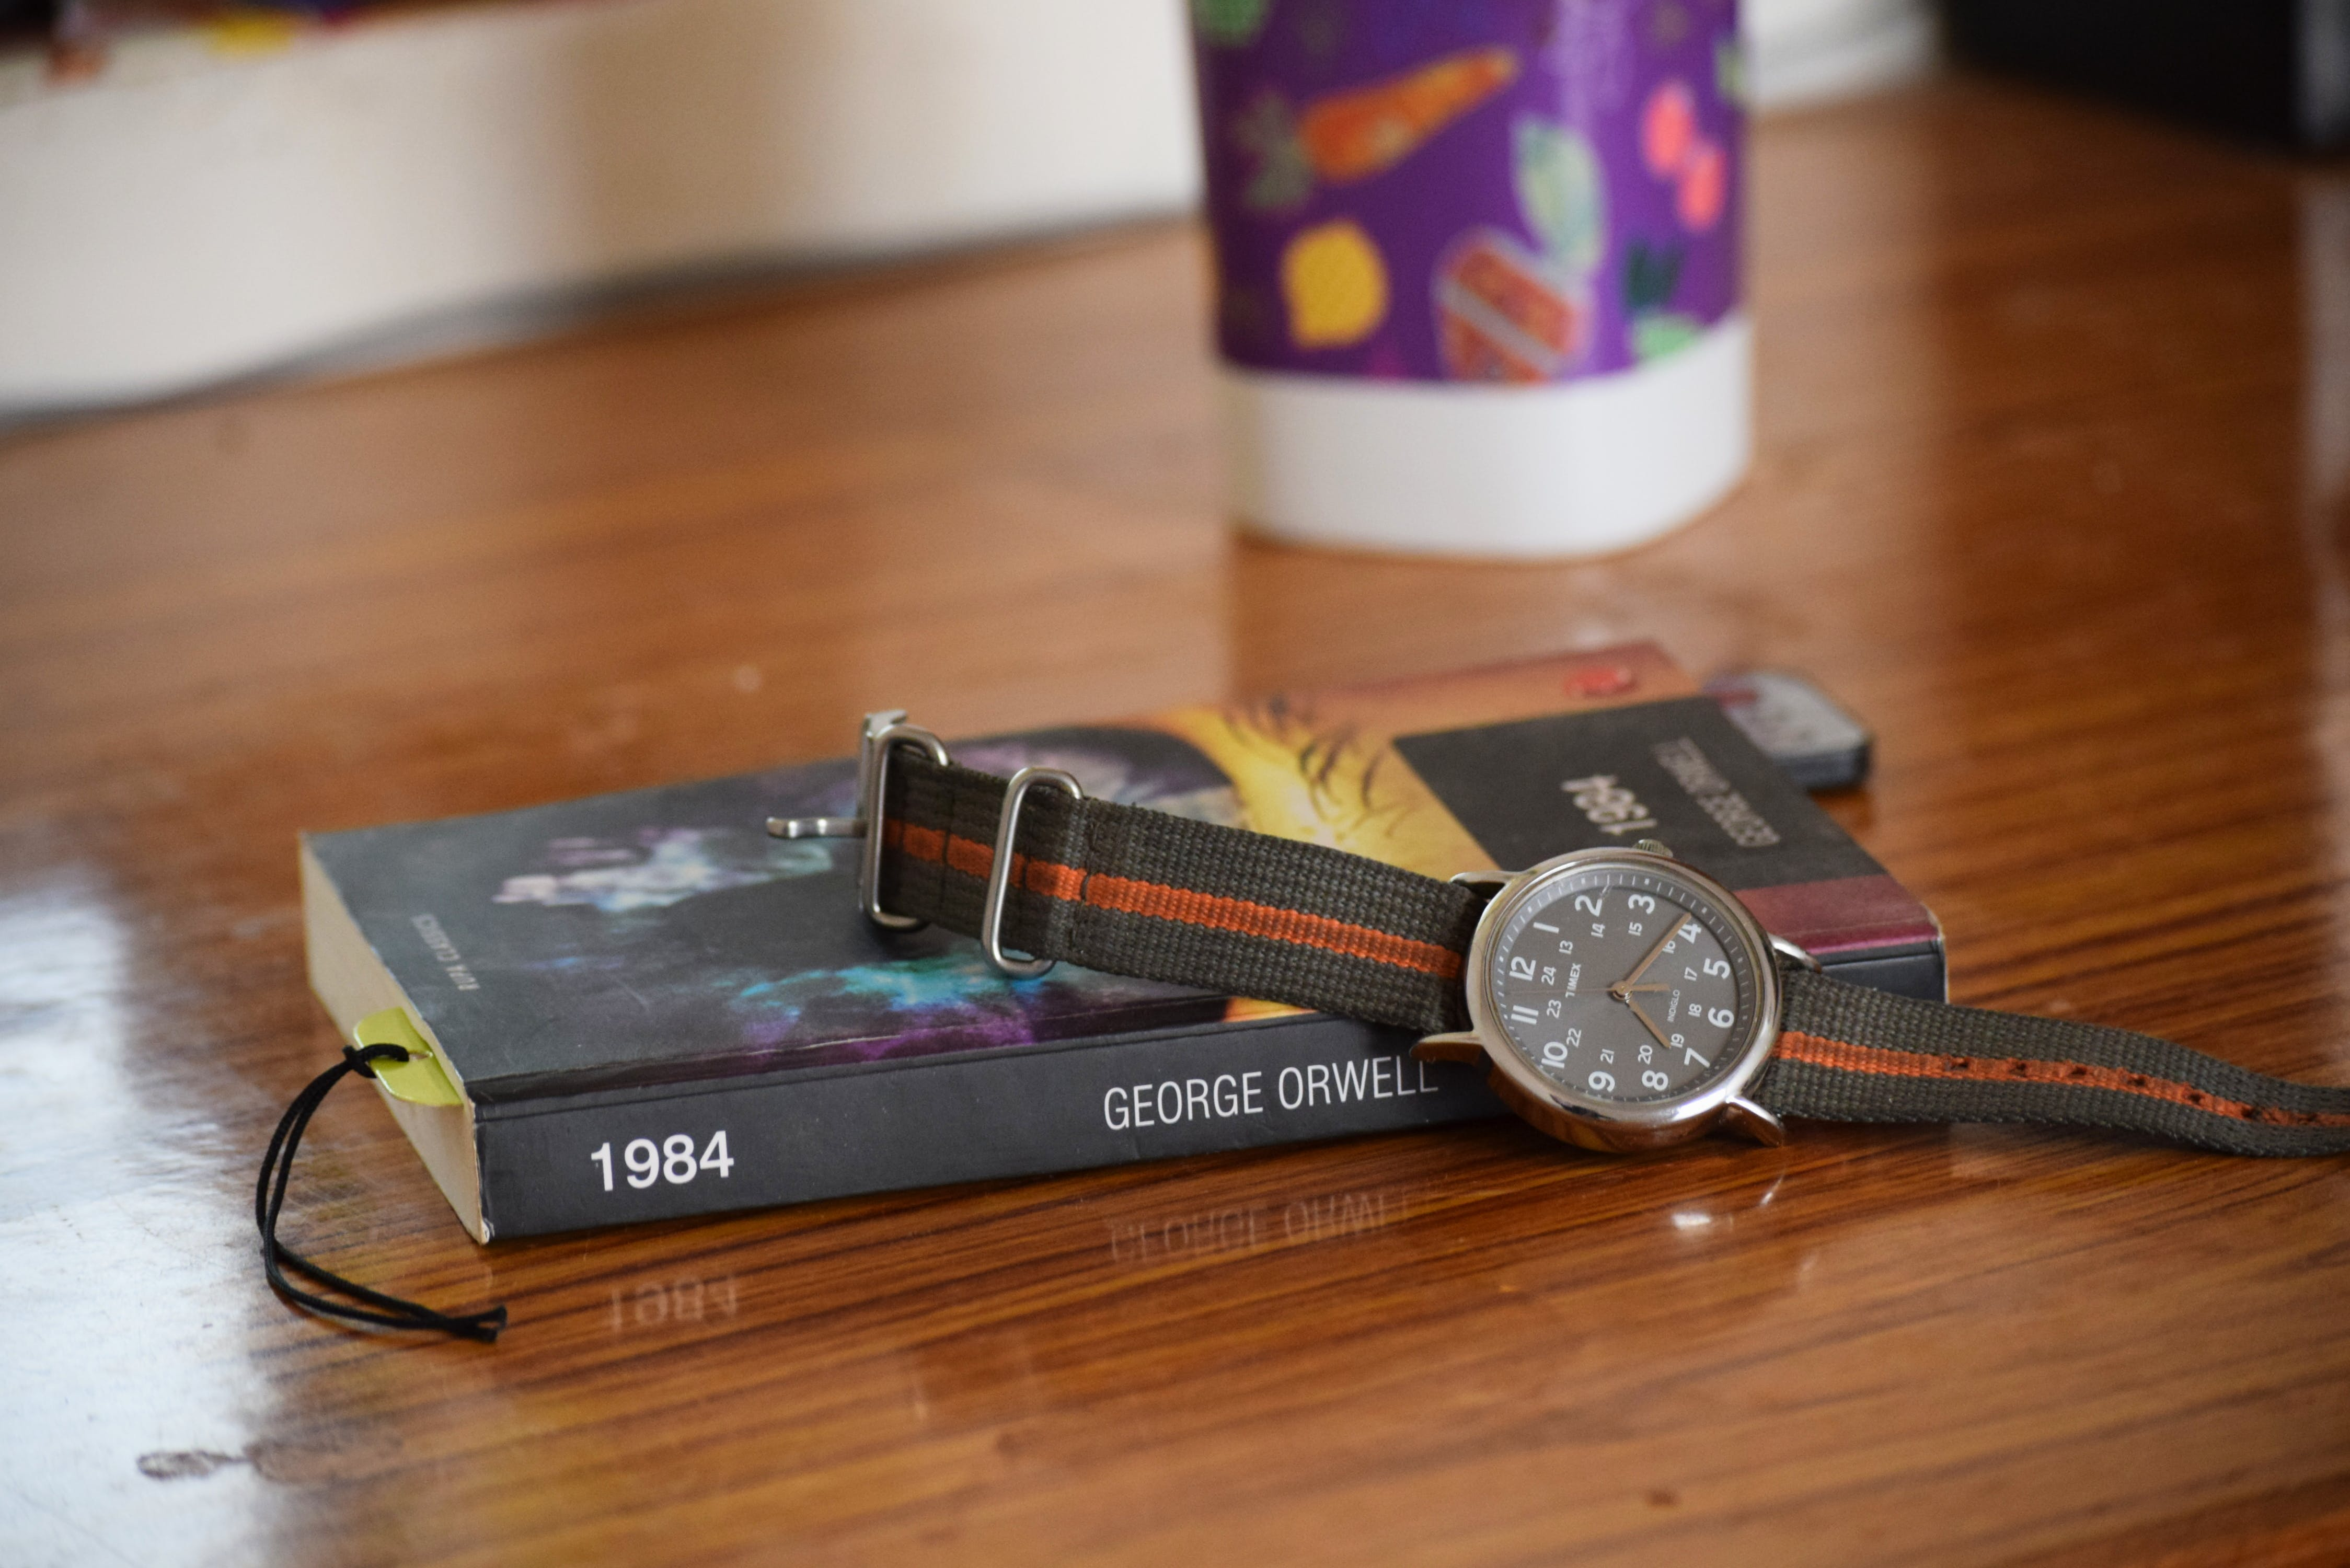 Free stock photo of Analog watch, book, tea cup